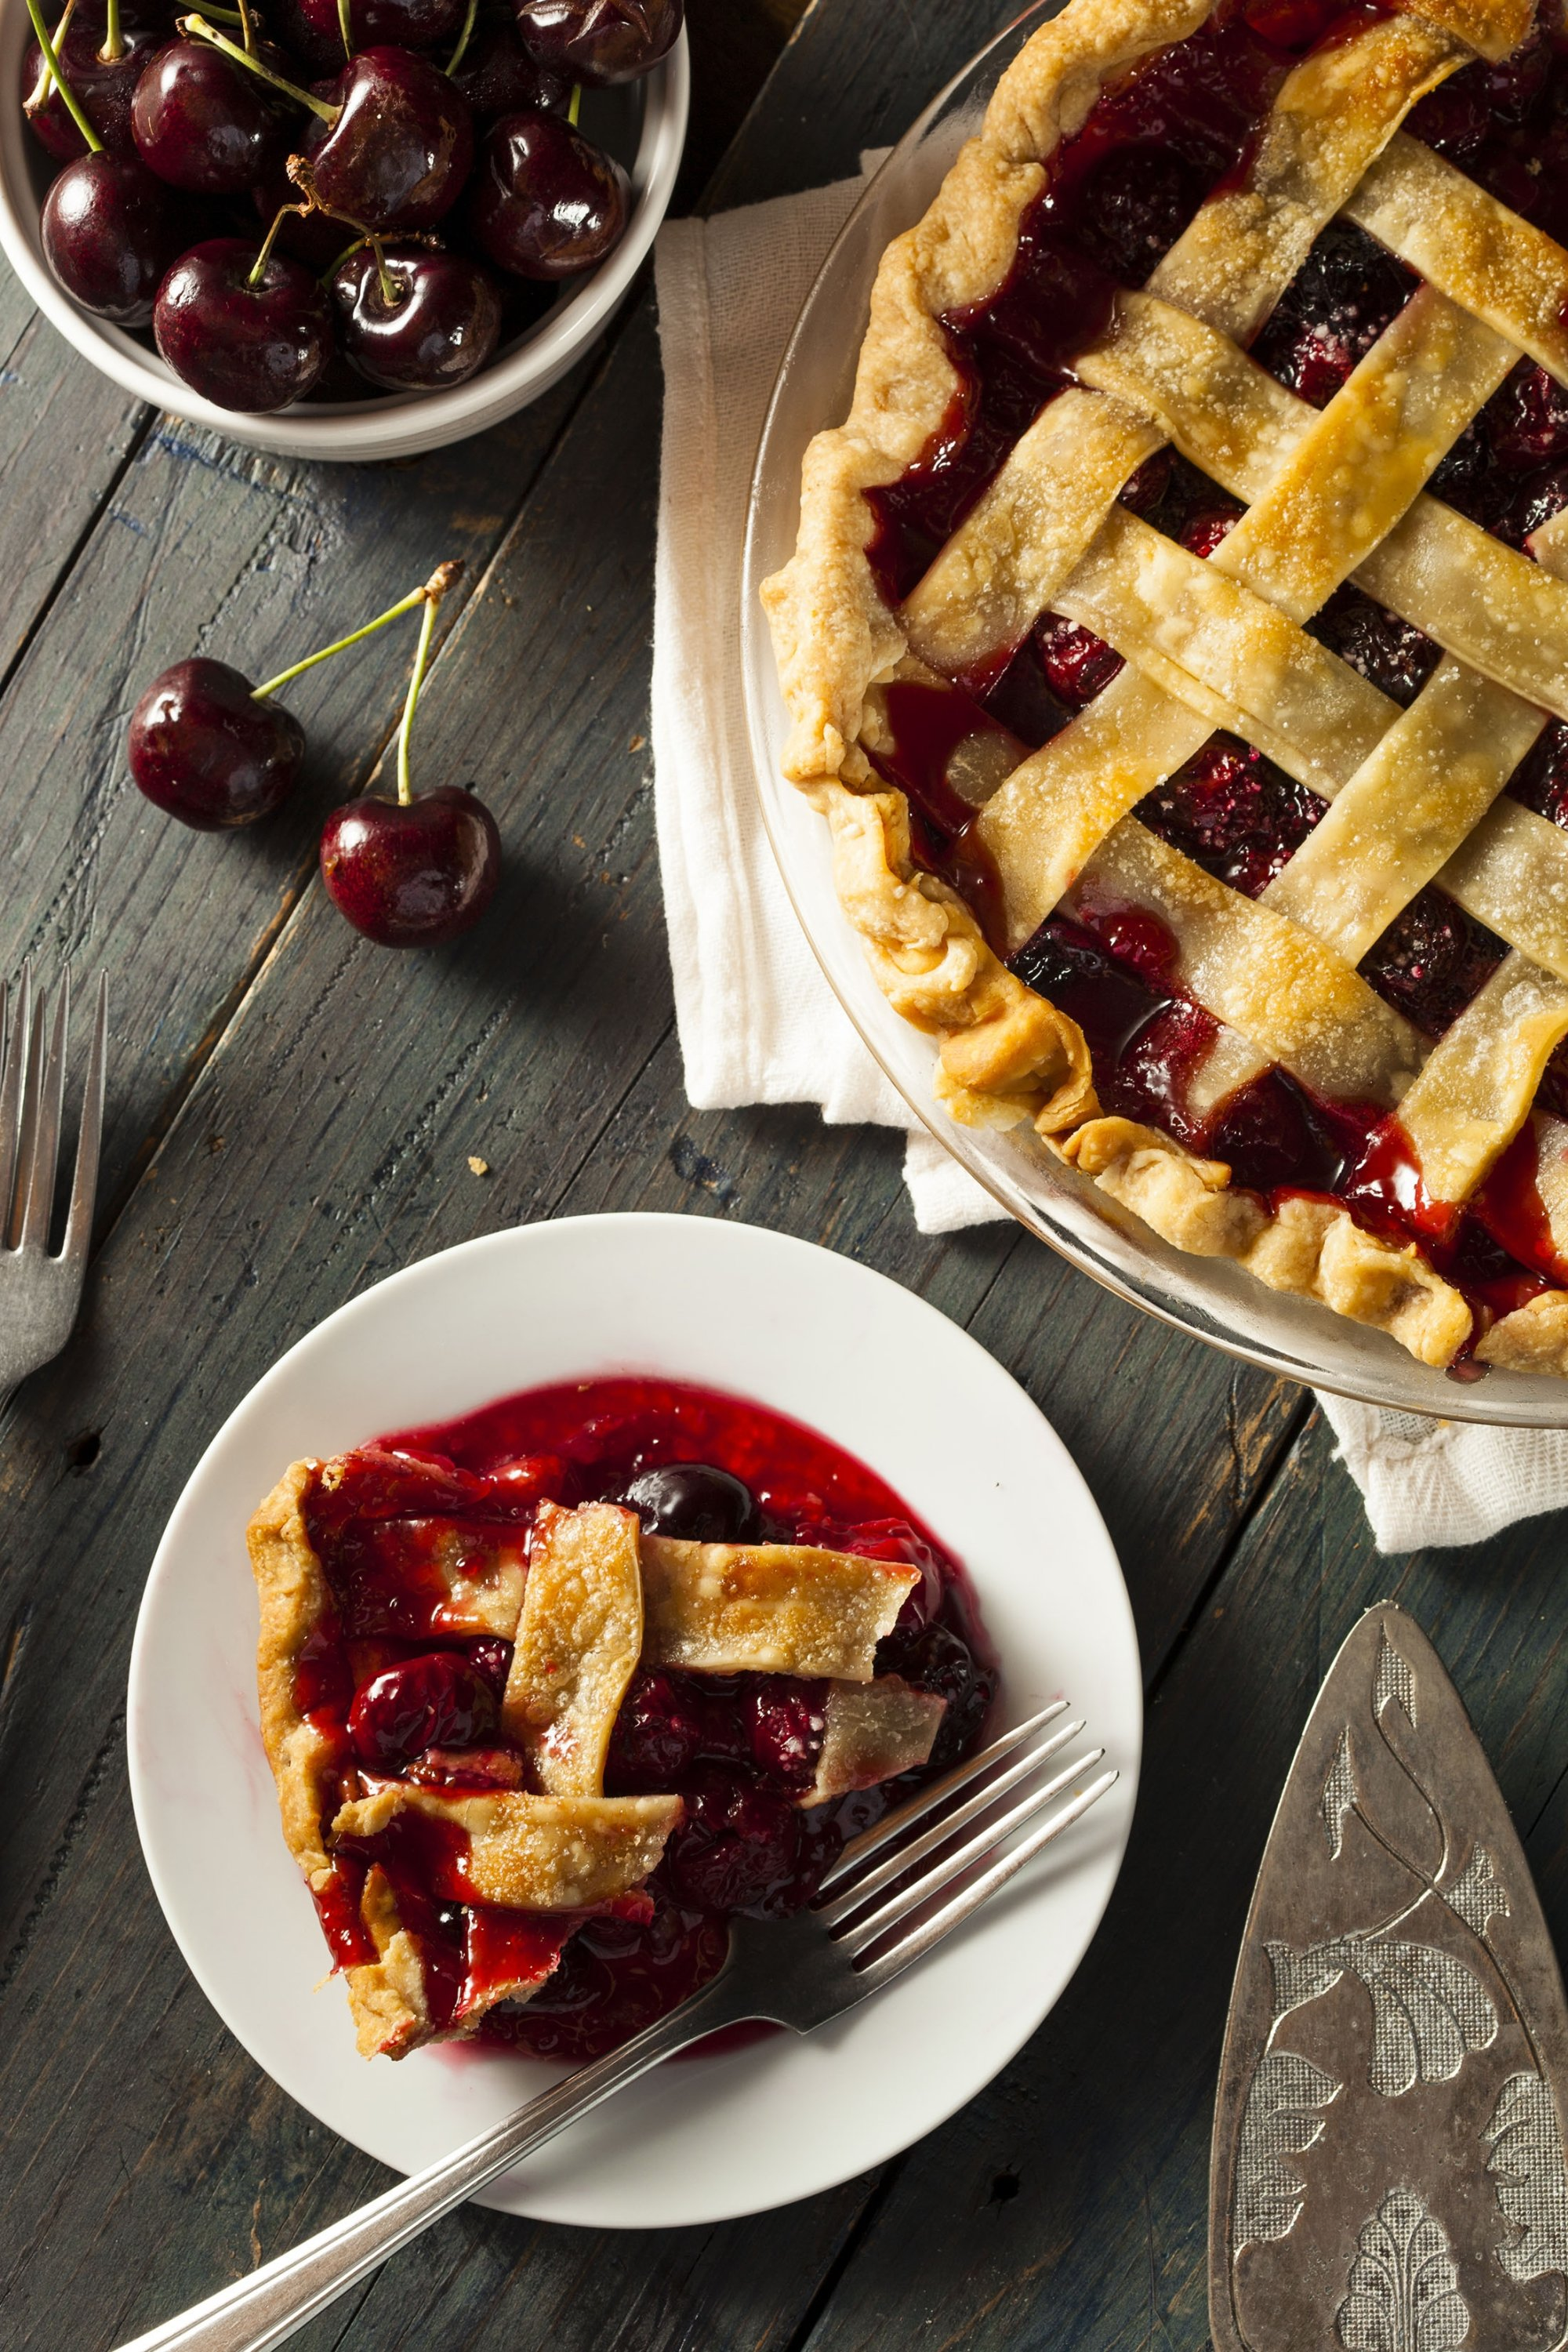 When in doubt, bake your cherries into a classic pie. (Shutterstock Photo)